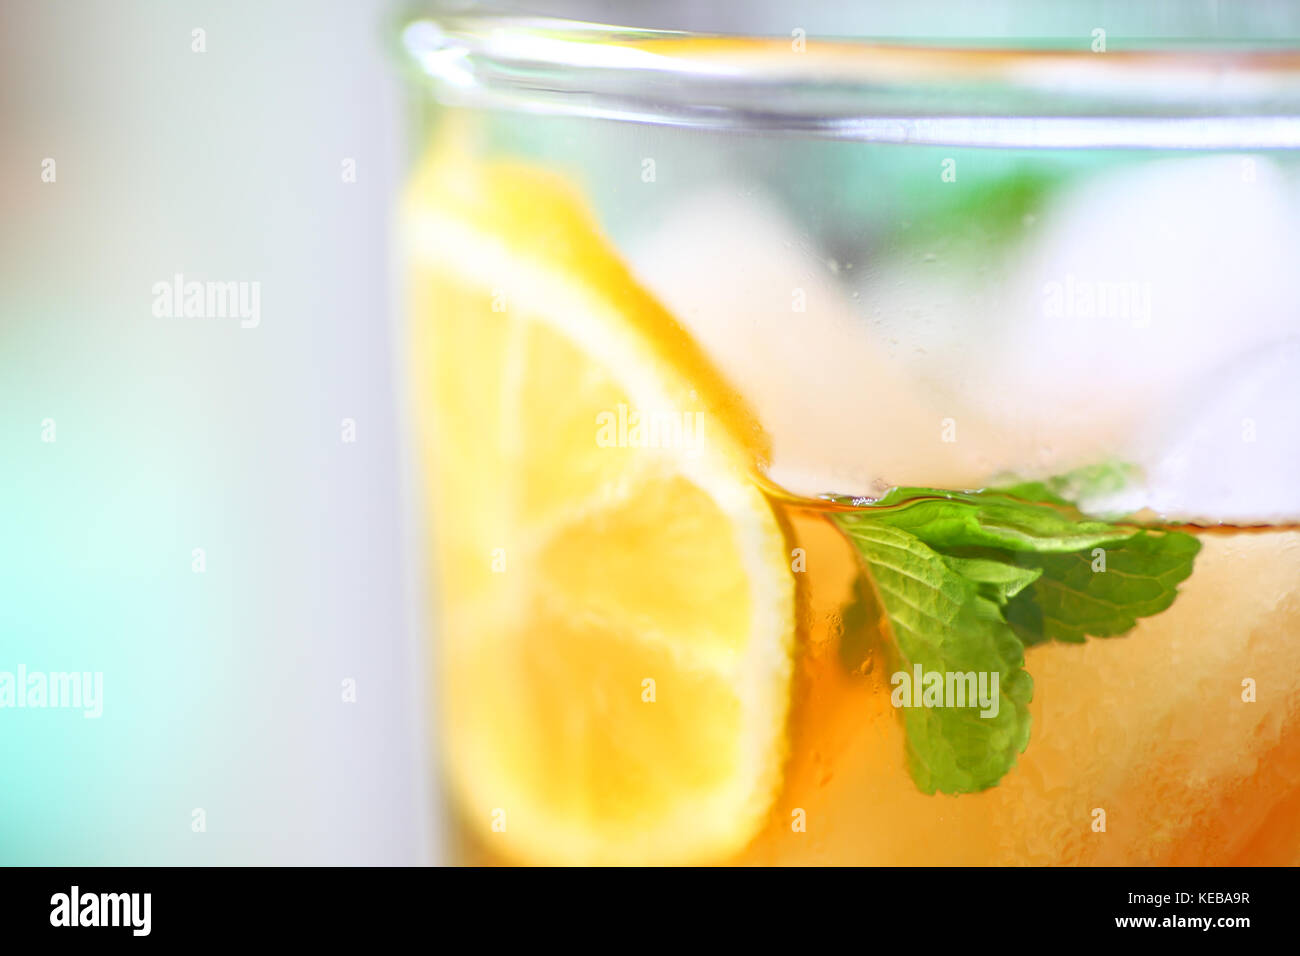 Closeup of iced tea with lemon slice and mint leaves - Stock Image